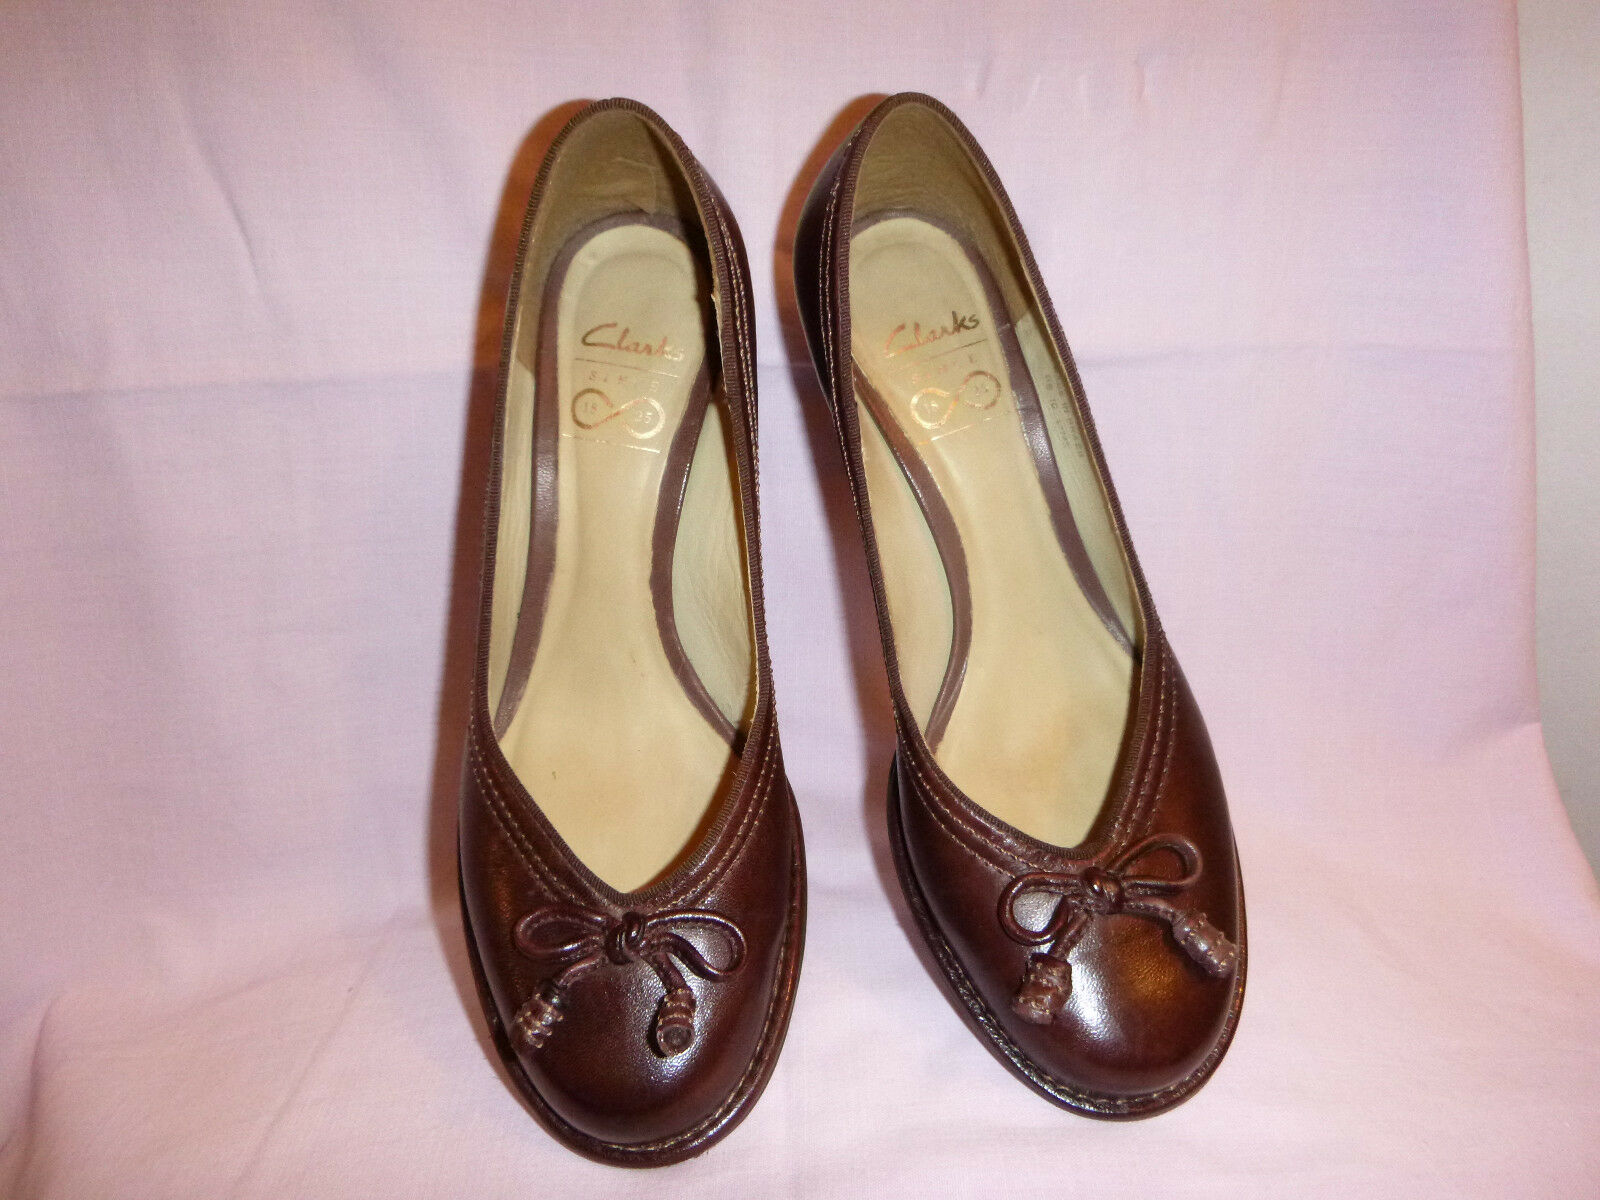 Clarks- brown elegante Pumps Leder Gr.4(37) Weite G Abs-6,5